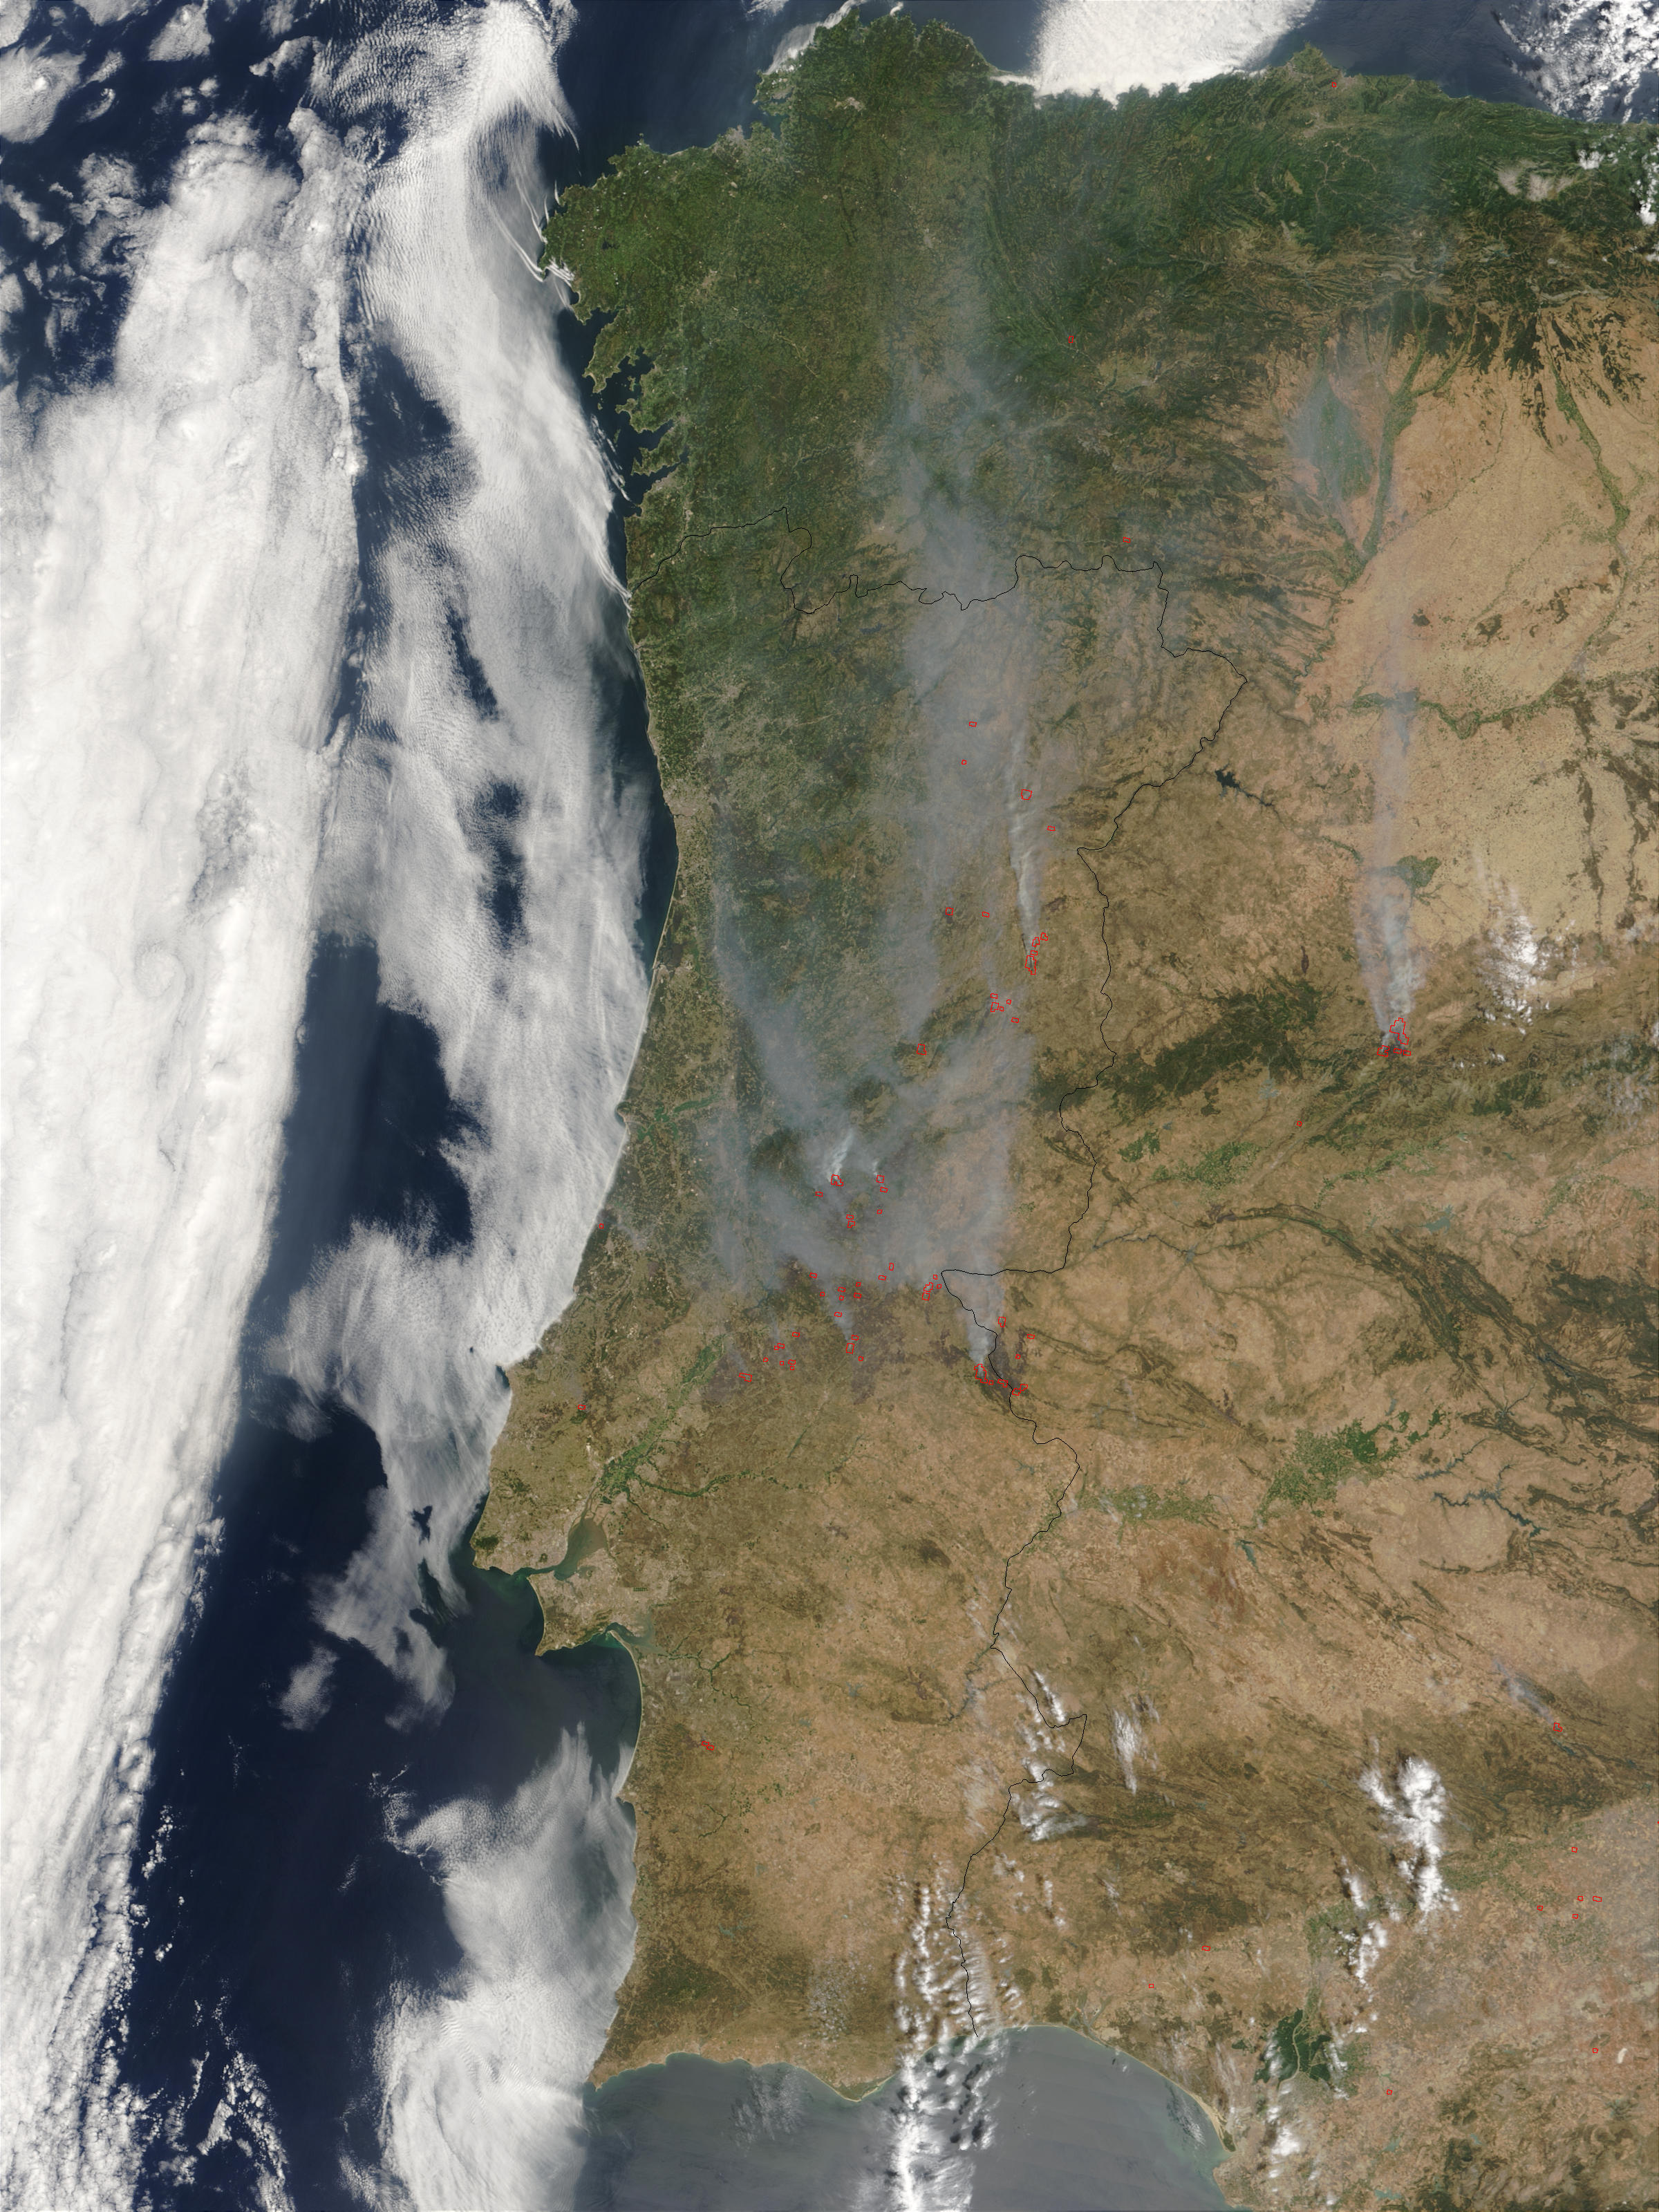 Image of Terra/MODIS 2003/216 11:30 UTC Fires and smoke across Portugal<br>(morning overpass), Pixel size 250m